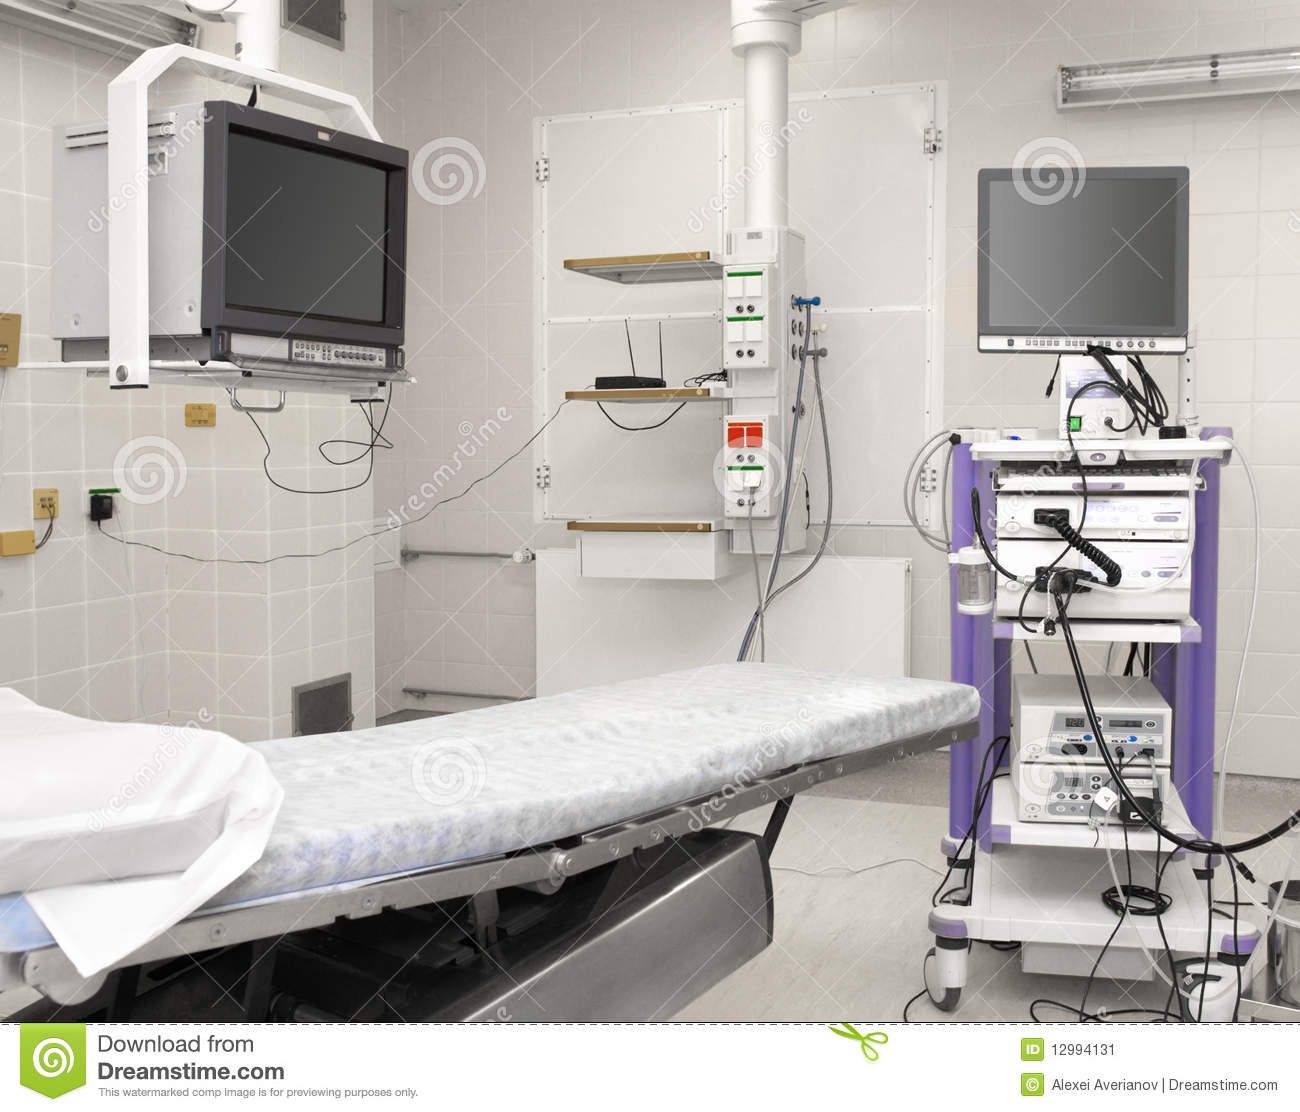 how to sell medical equipment to hospitals